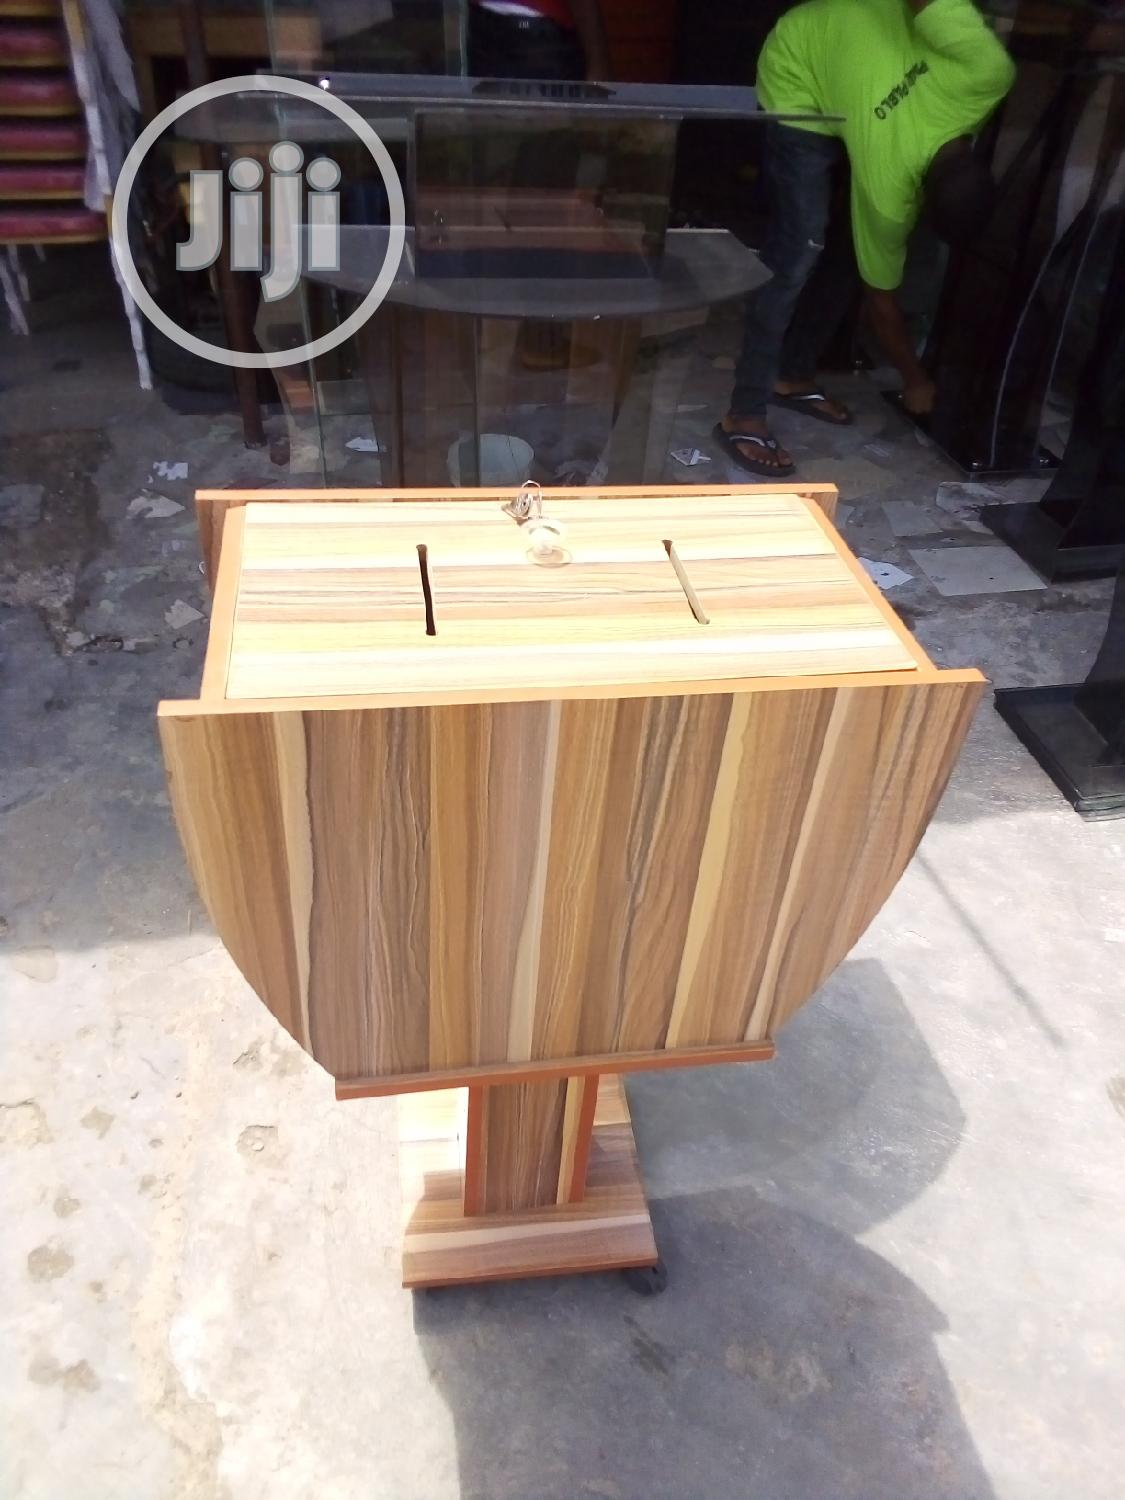 Offering Box Made Of Foreign Wood, Demacated For Offerings And Tithes